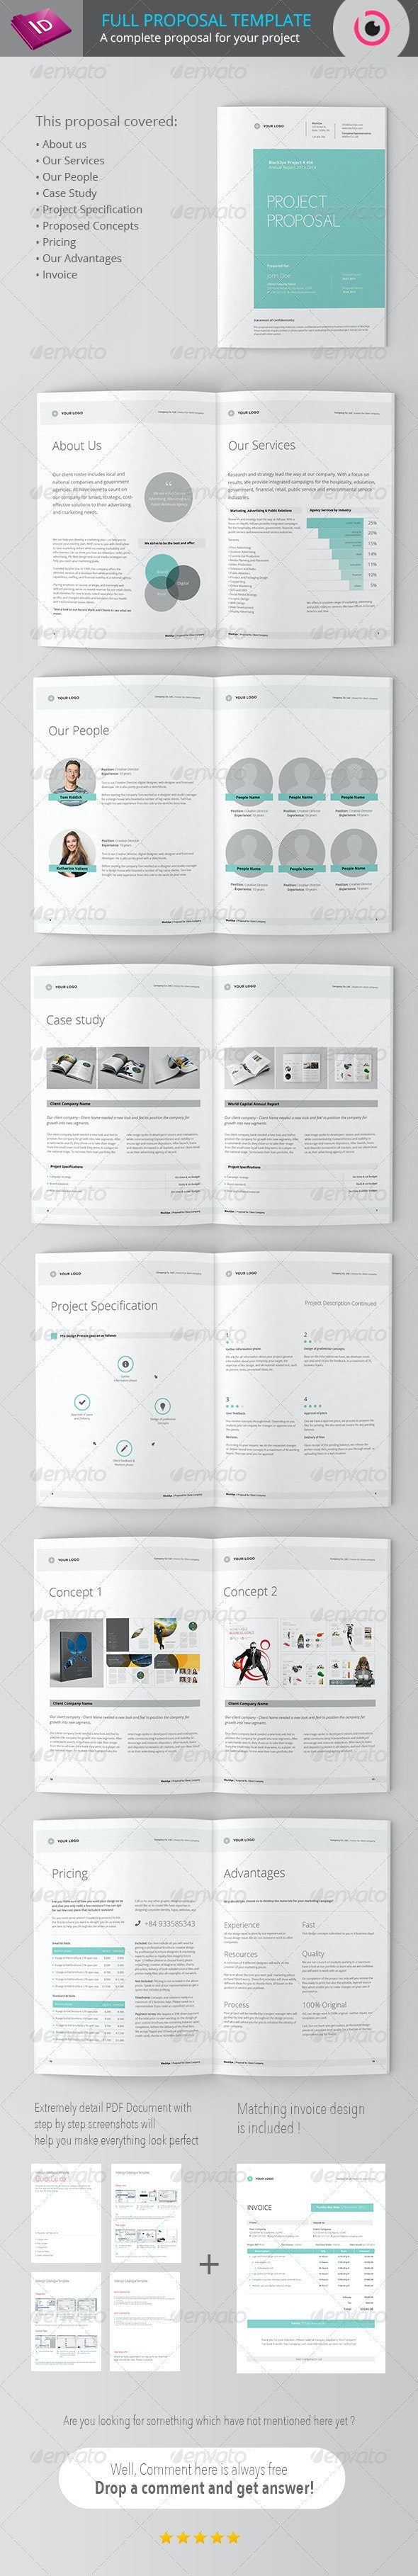 Full Project Proposal Template - Proposals & Invoices Stationery